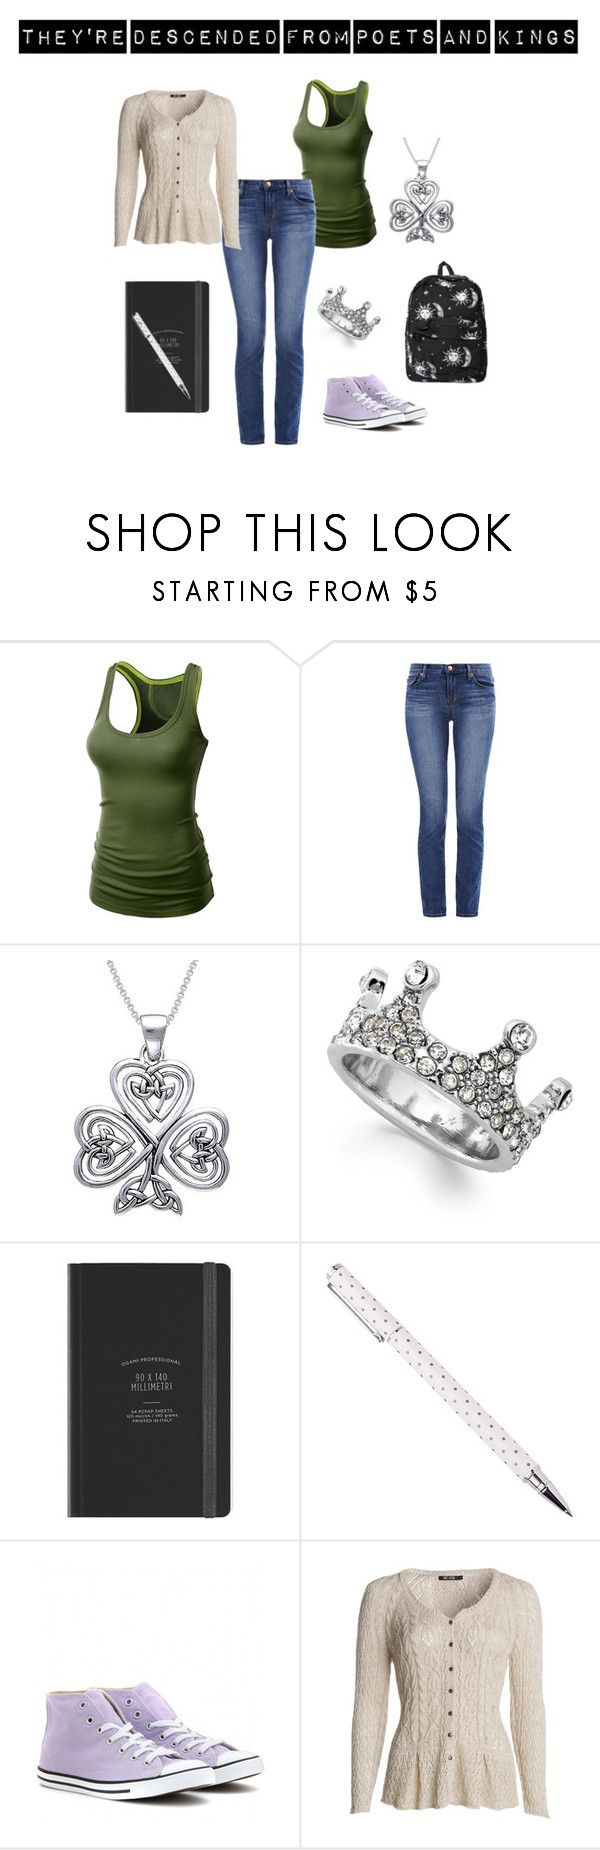 """Ireland"" by clairemjc ❤ liked on Polyvore featuring J.TOMSON, J Brand, Carolina Glamour Collection, Bar III, Converse, NIC+ZOE and Motel"